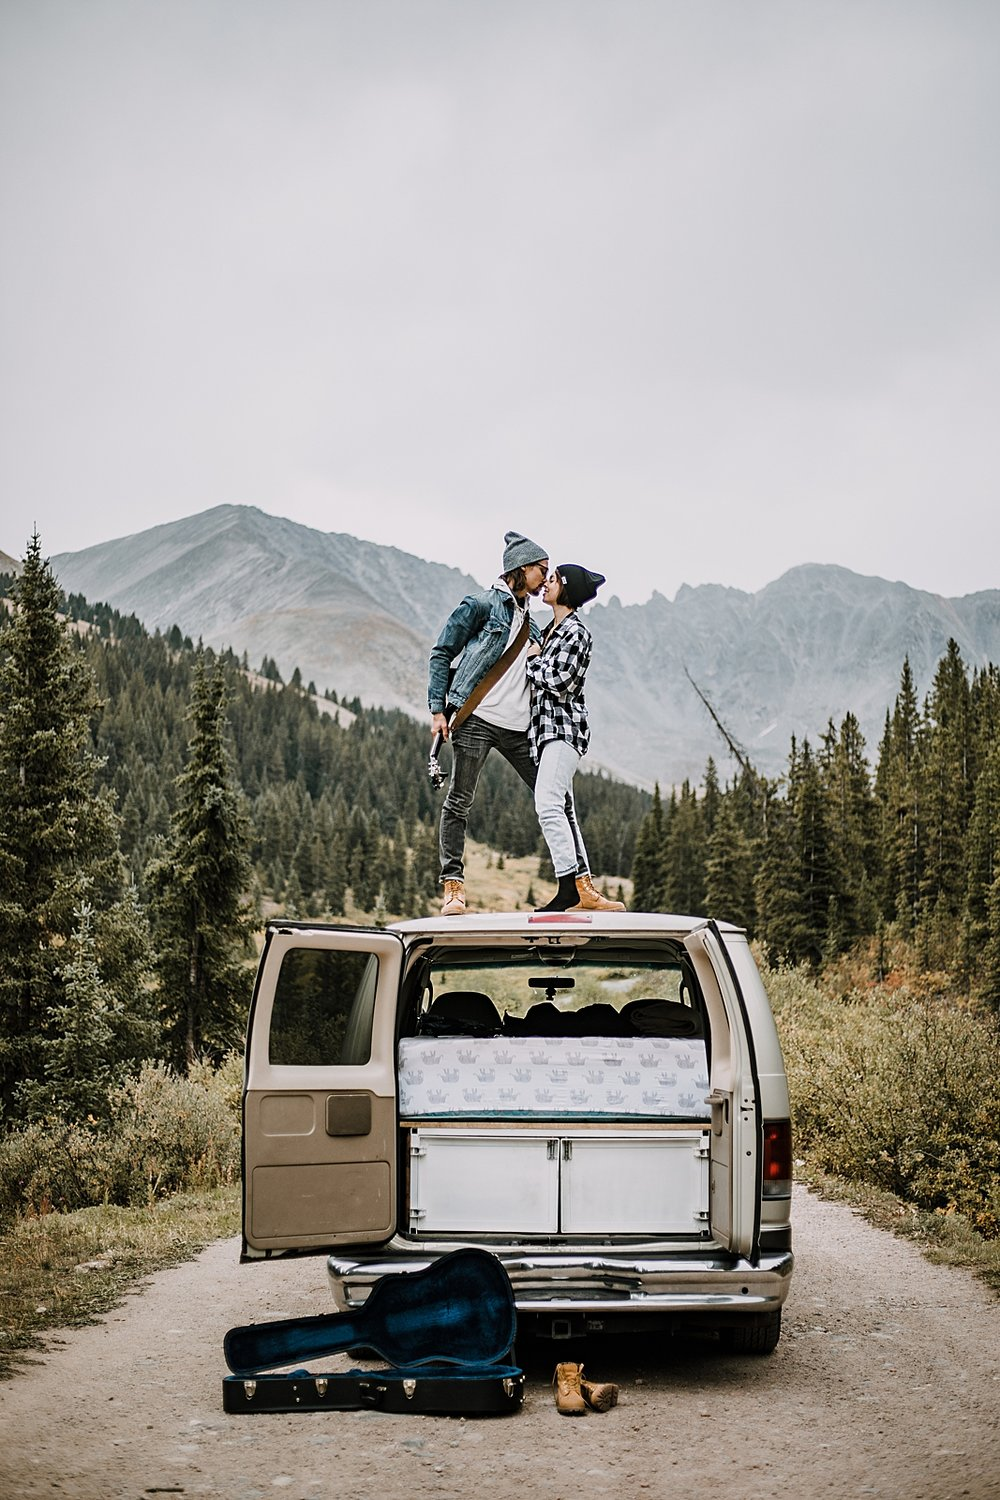 singing on van, couple living out of a van, van life with dogs, hiking mayflower gulch, mayflower gulch elopement, mayflower gulch wedding, colorado 14er, colorado fourteener, leadville elopement